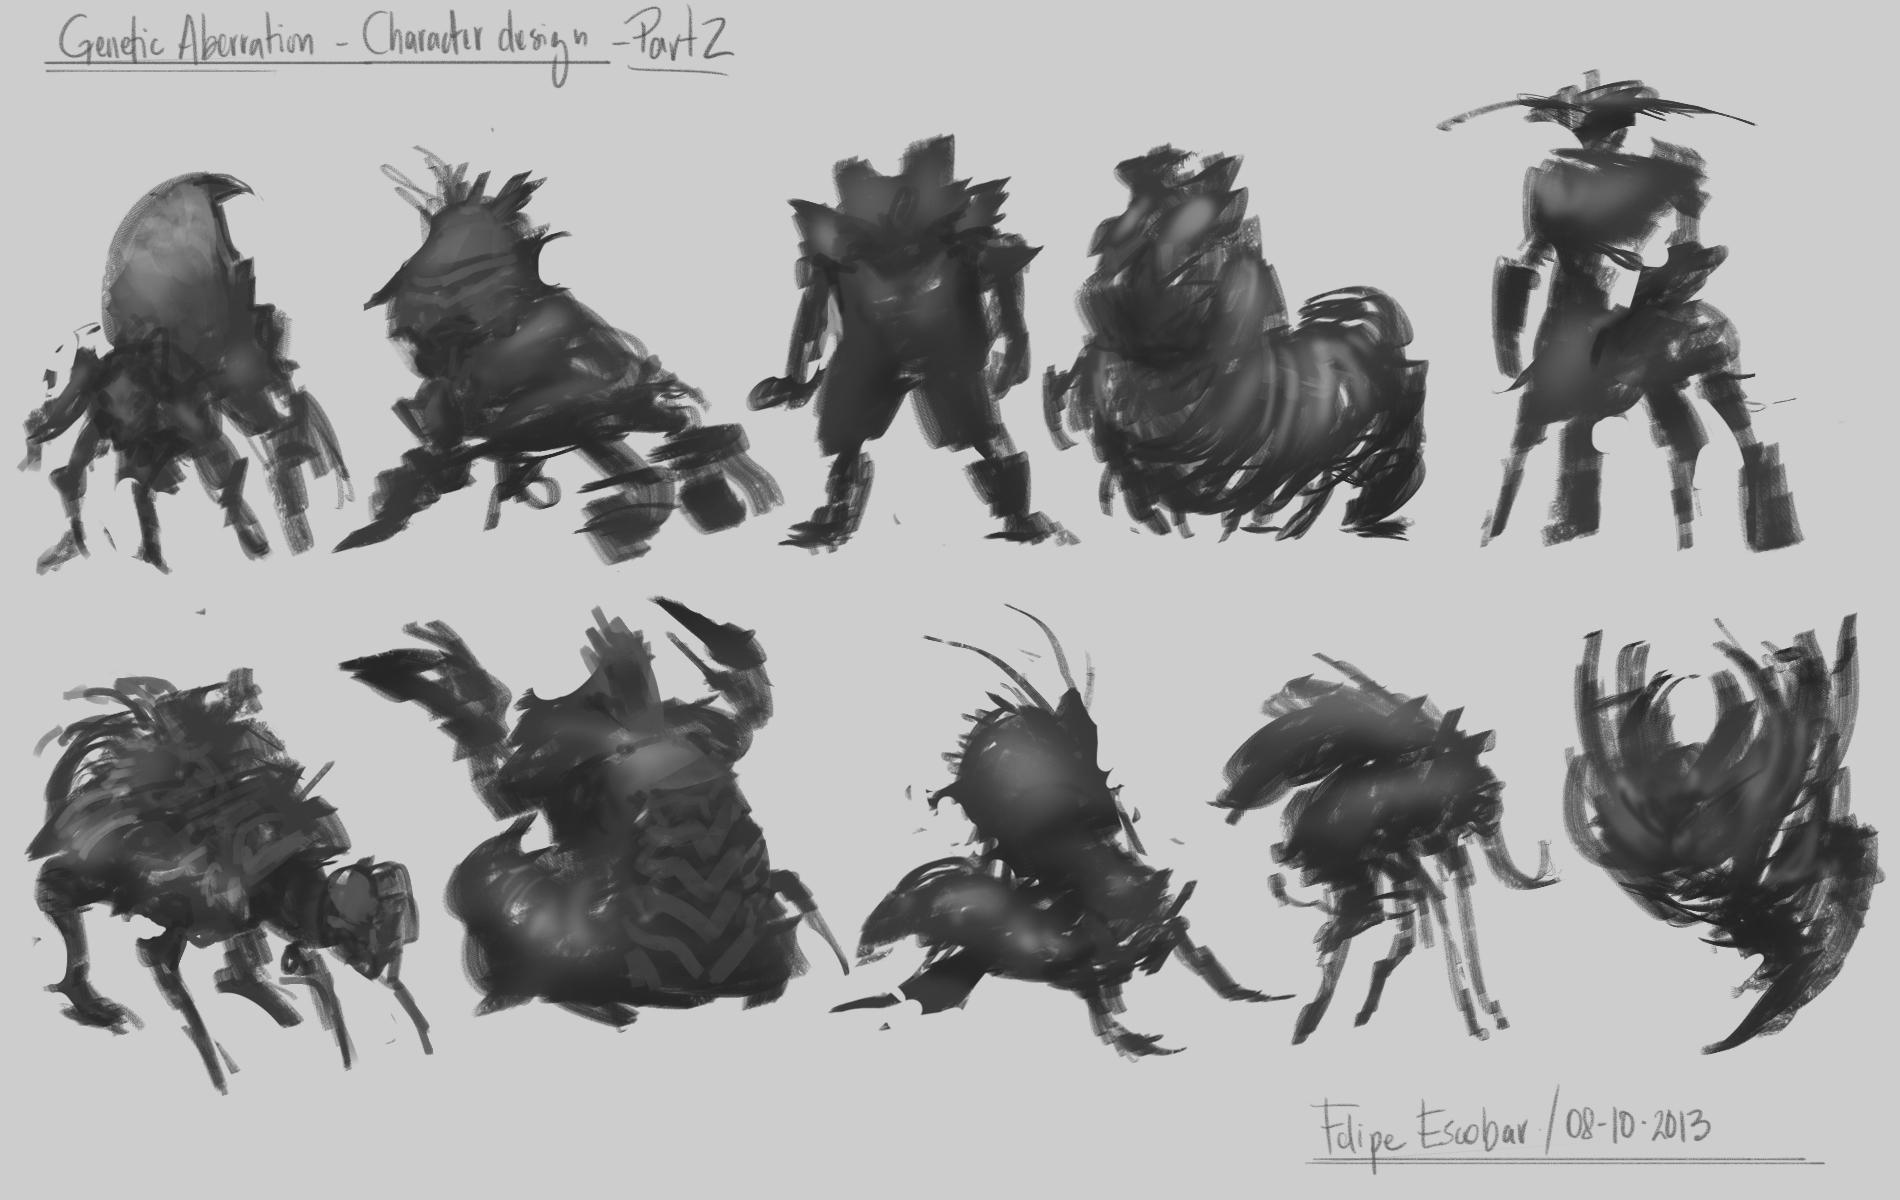 Genetic Aberration - Character design  - image 2 - student project